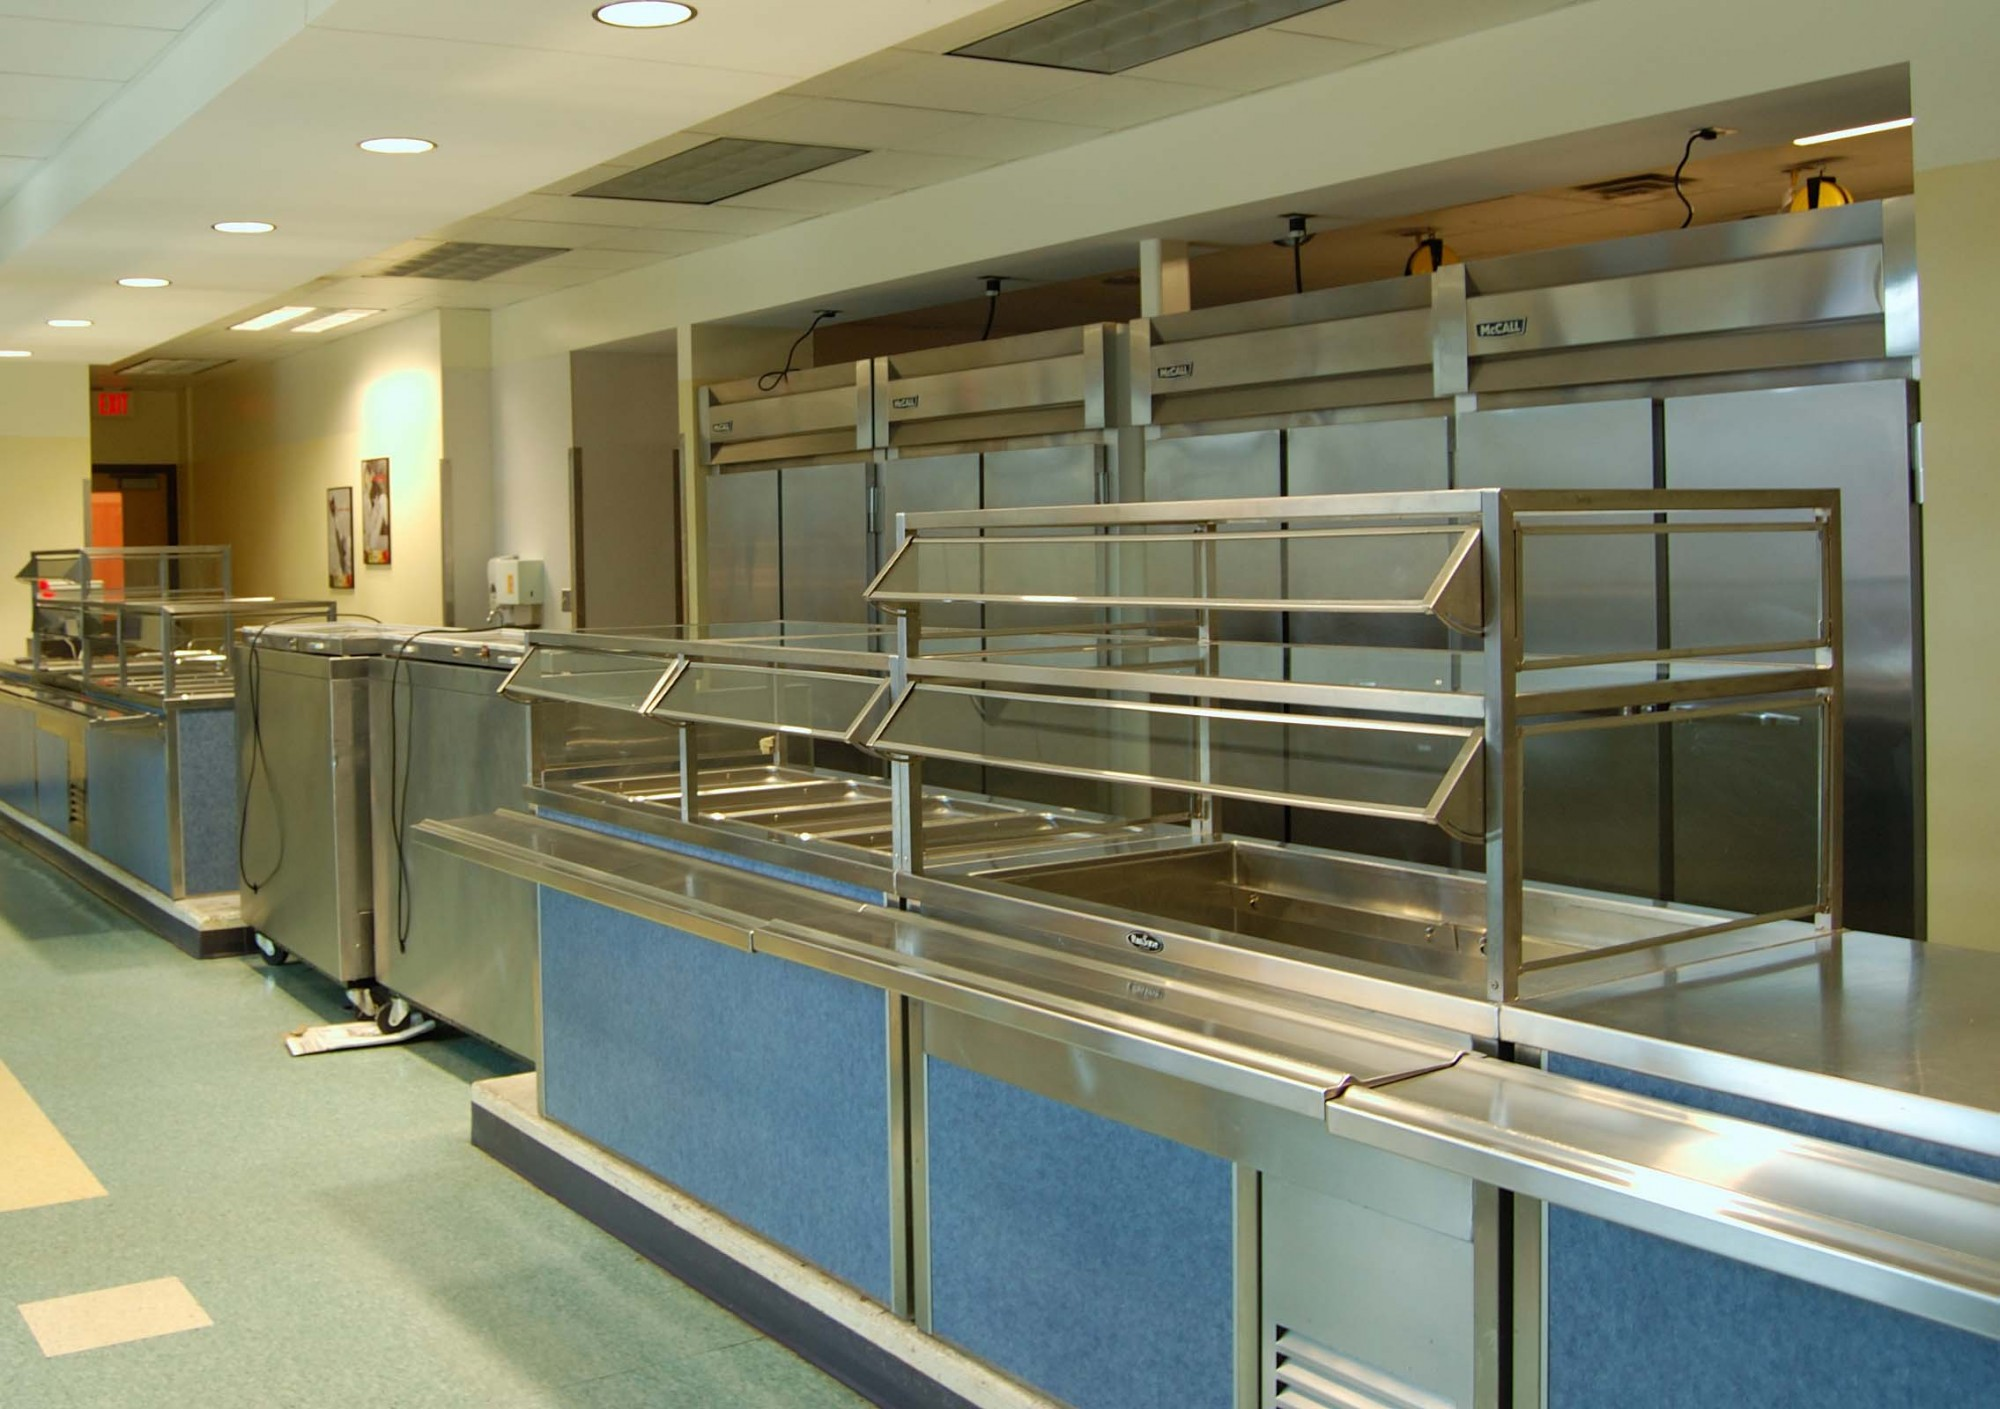 Iroquois Middle School   Cafeteria Line History Grand Rapids 2000x1409